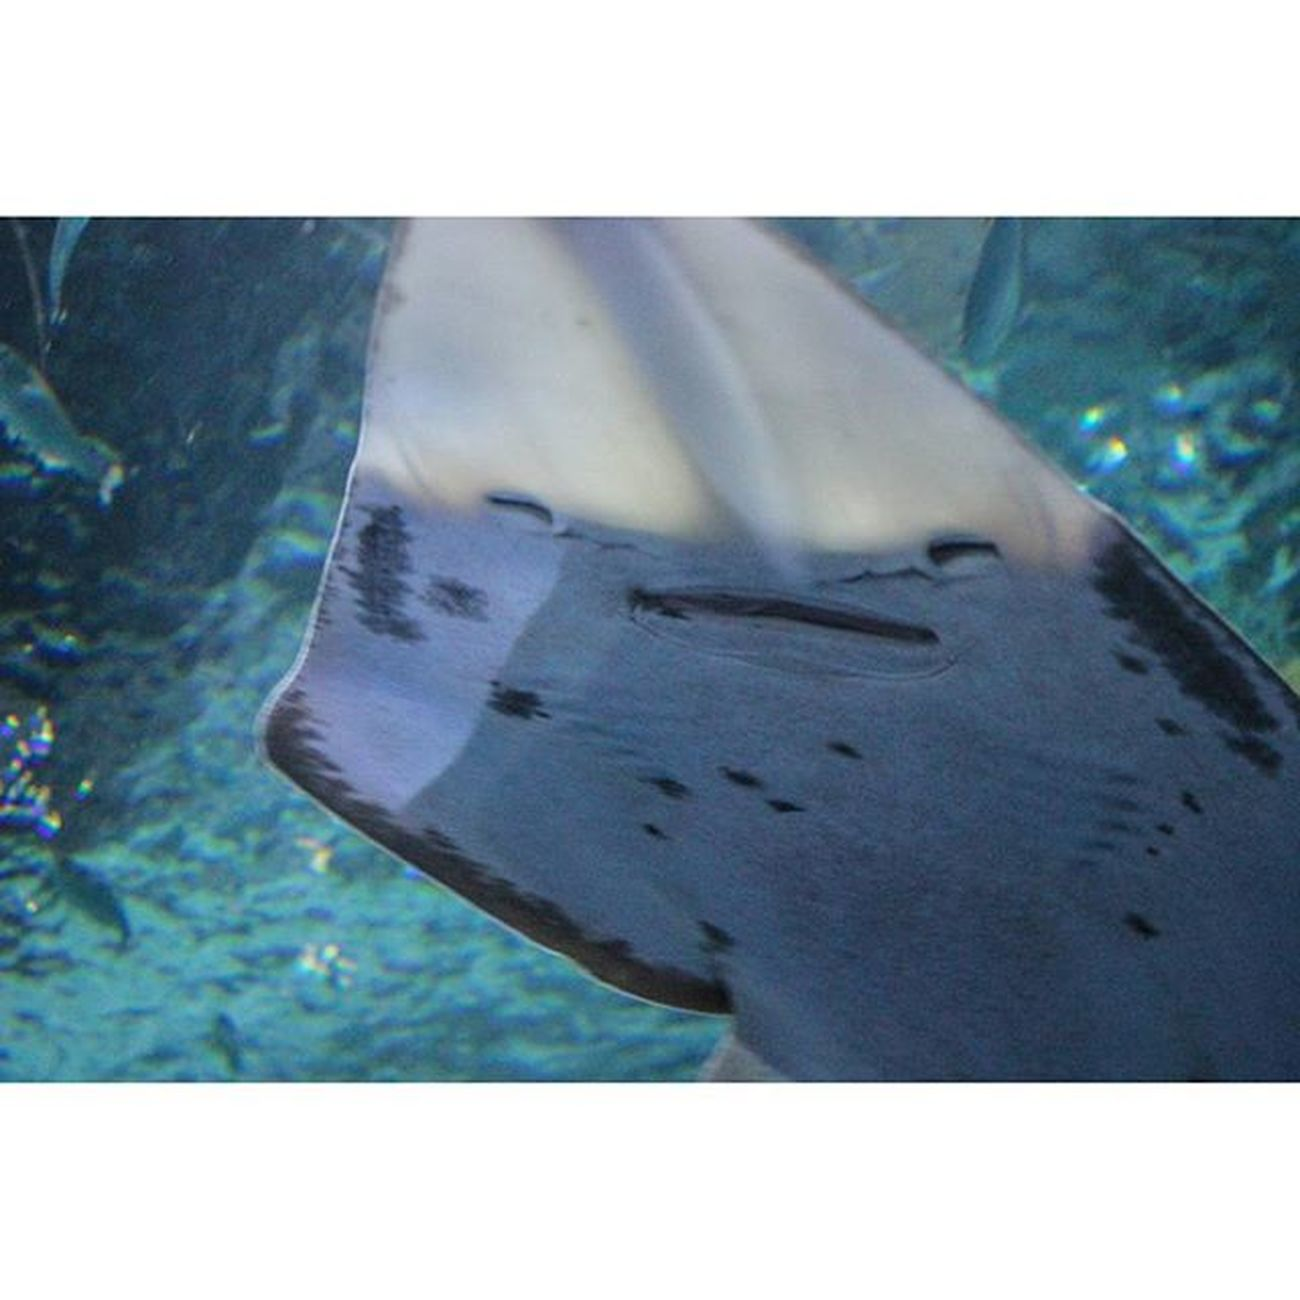 The happiest sting ray I've ever seen 😁 Blueplanetaquarium Stingray Cute Smile Aquarium Sealife